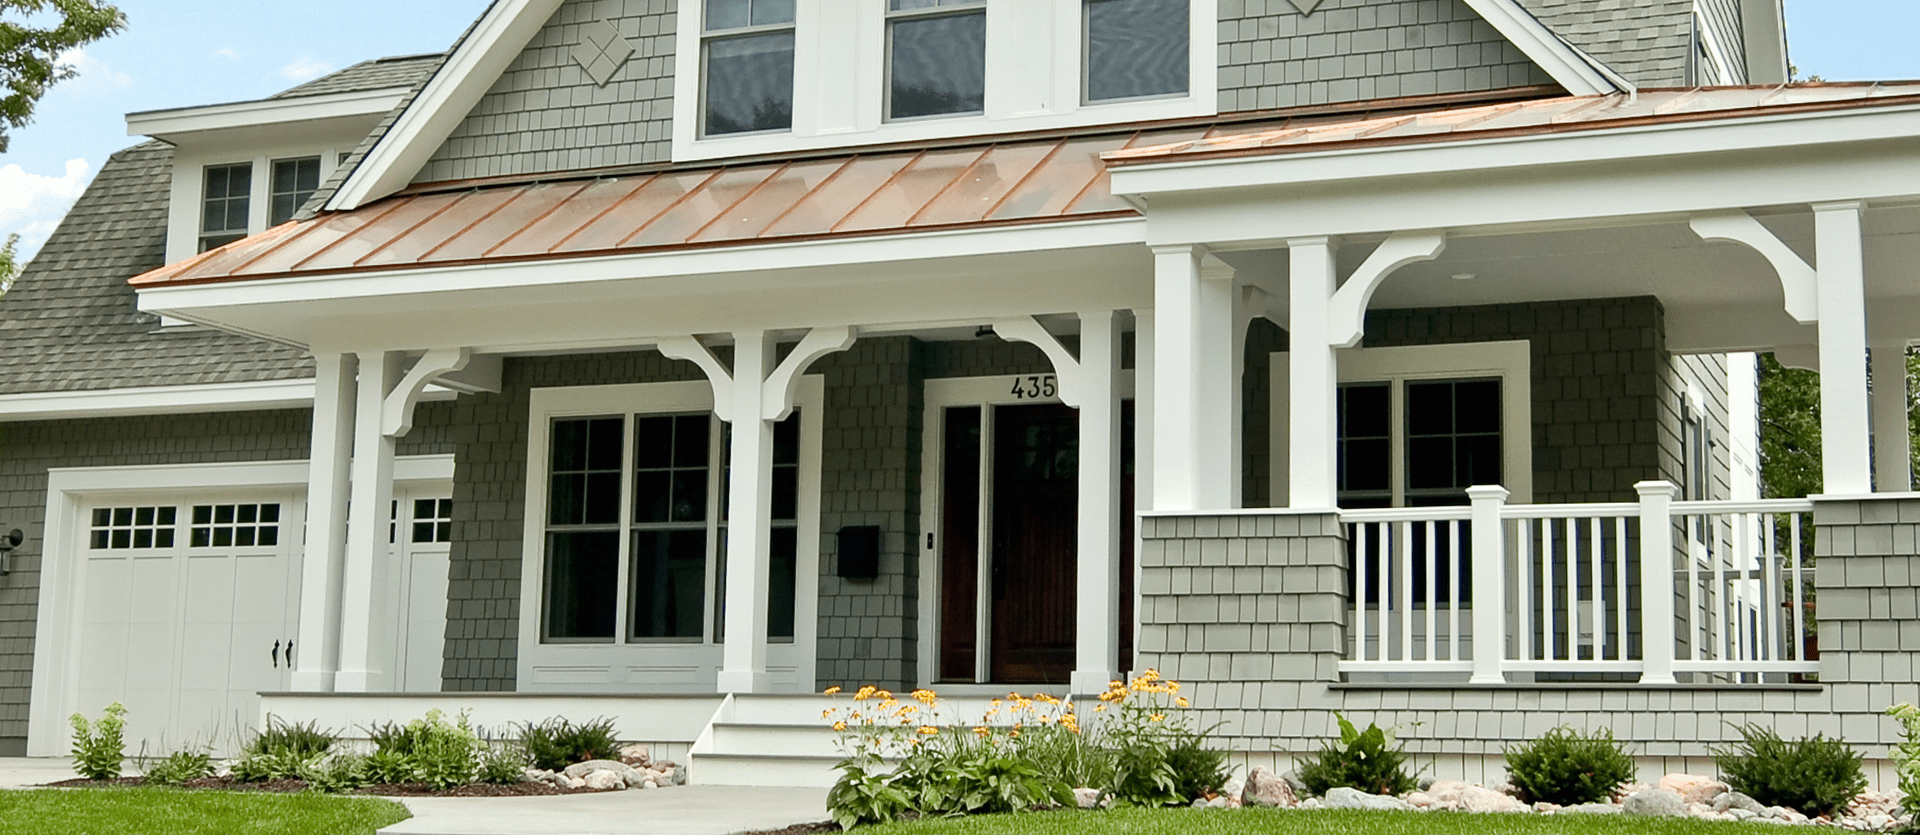 Remodeling company in Morris County NJ - A&E Remodeling.